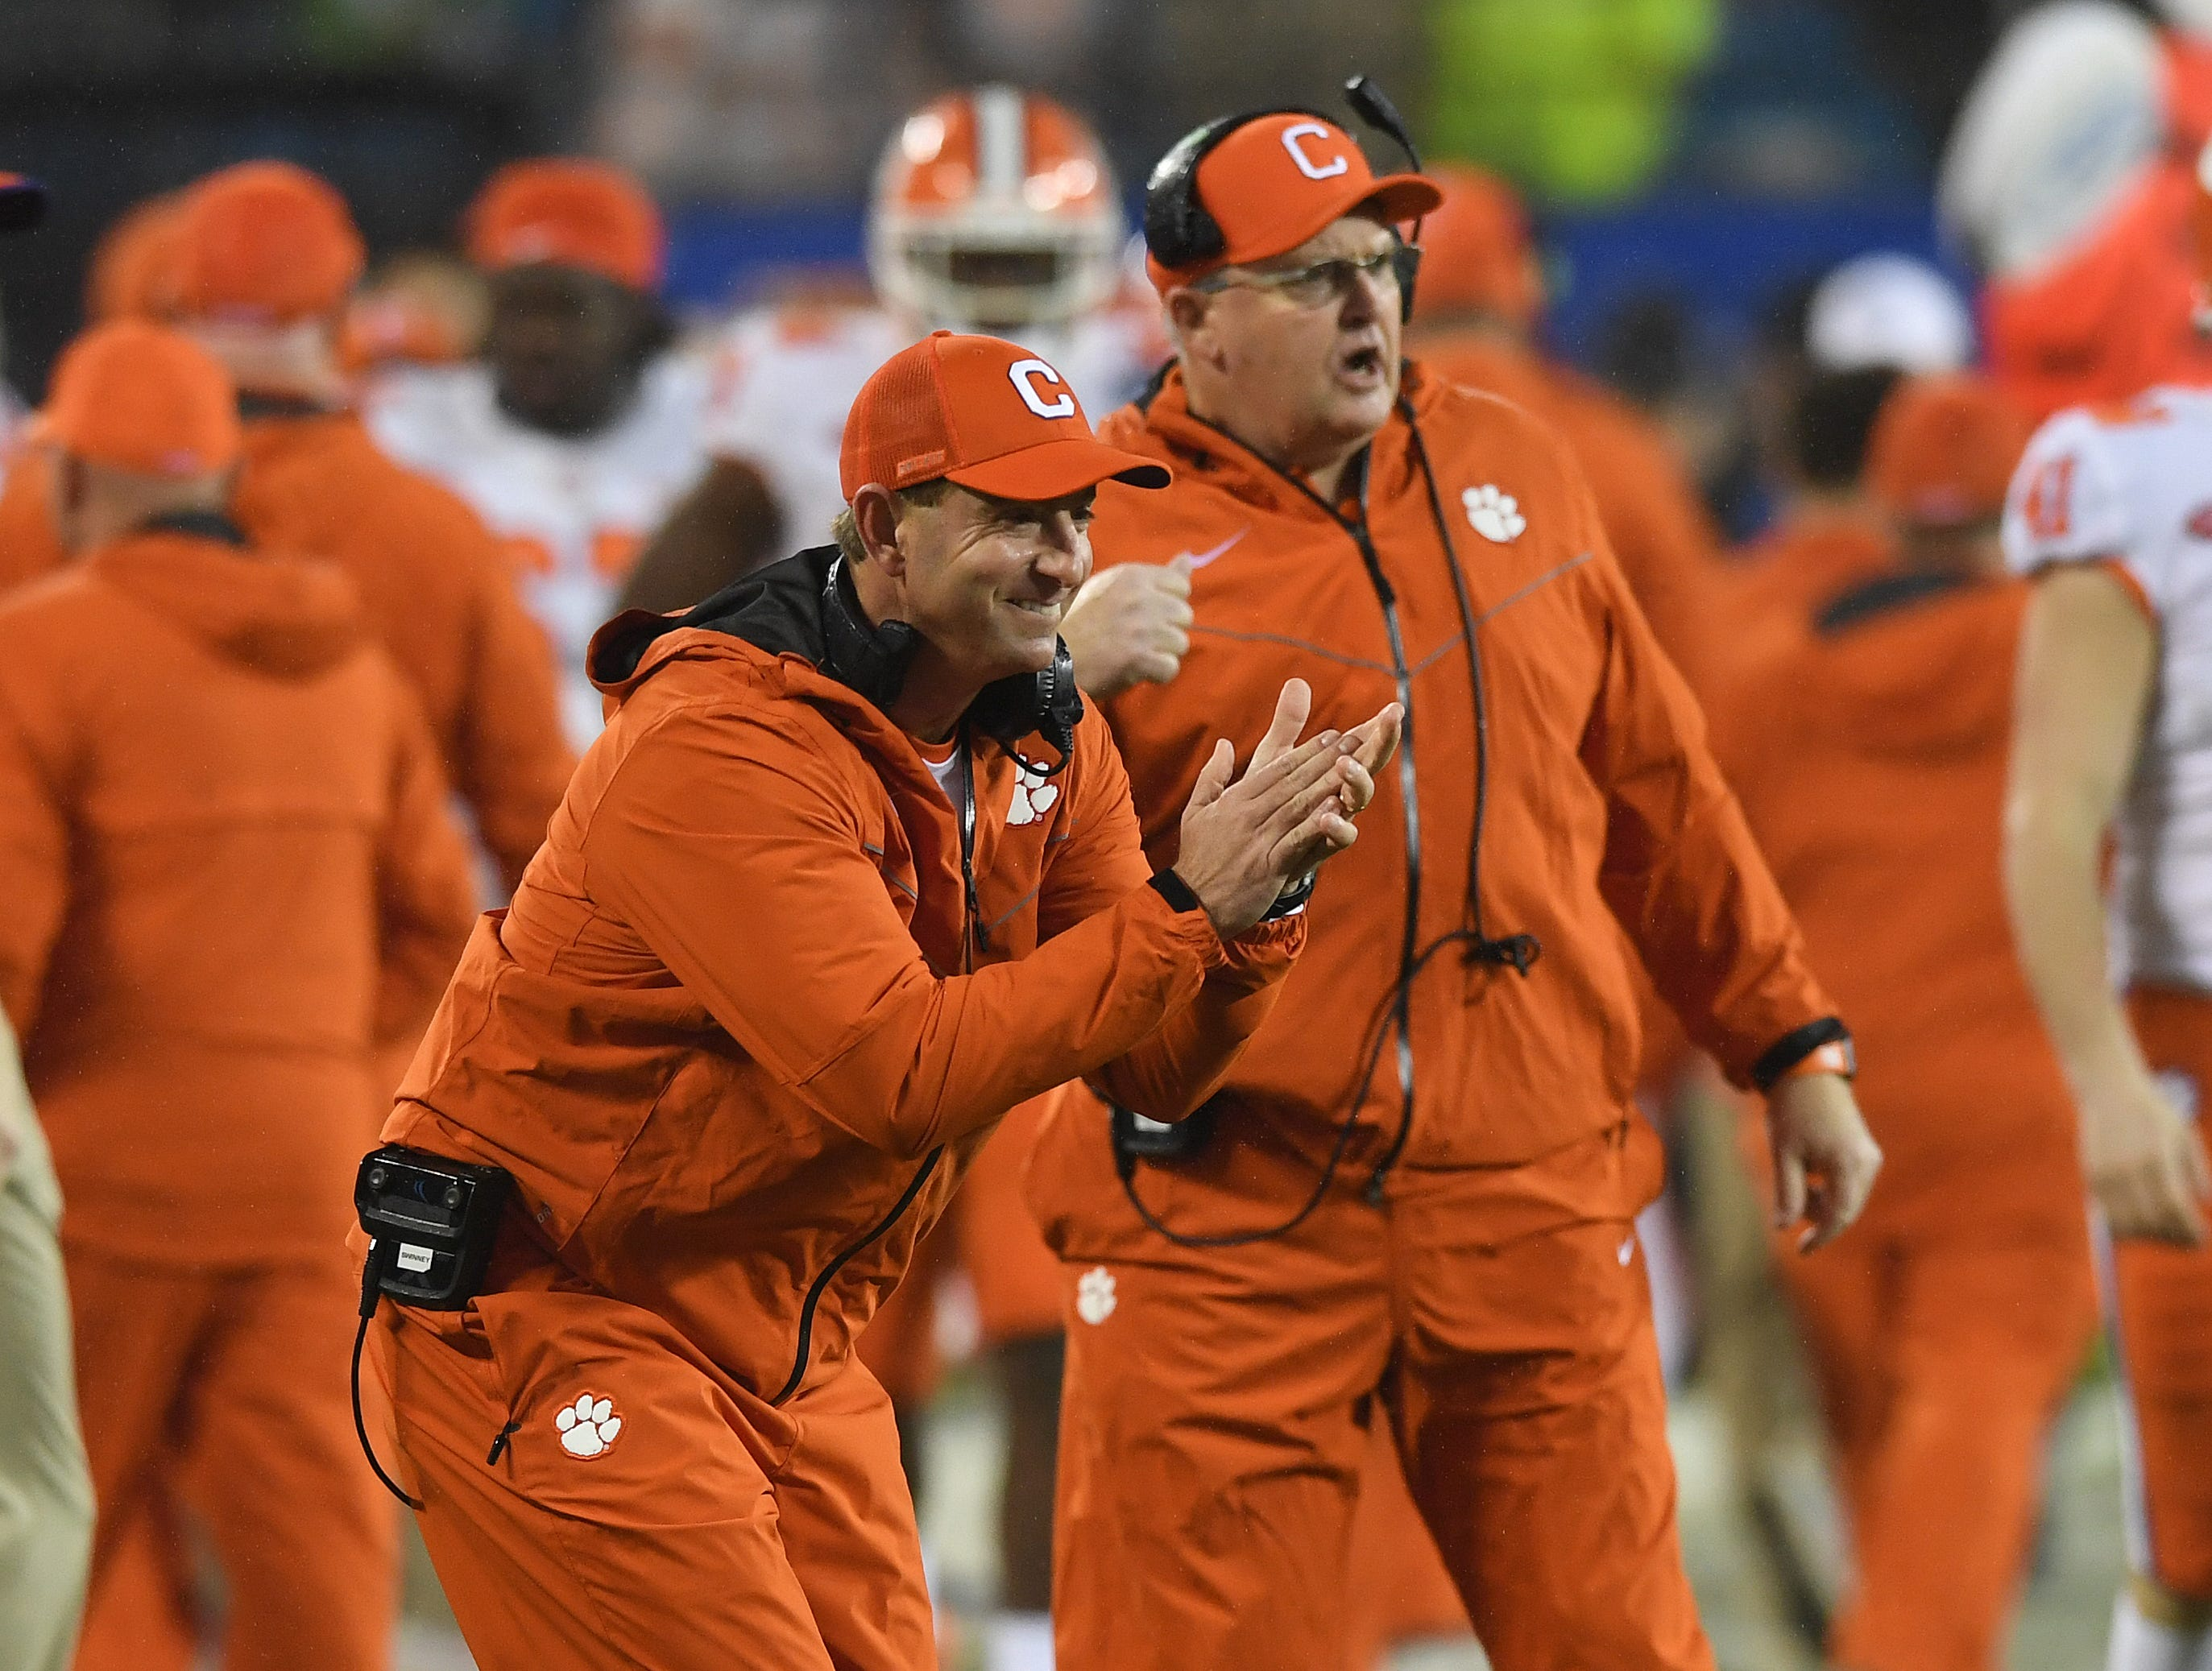 Clemson head coach Dabo Swinney reacts after running back Travis Etienne (9) raced 75 yards to score against Pittsburgh on the Tigers first play from scrimmage during the 1st quarter of the Dr. Pepper ACC Championship at Bank of America Stadium in Charlotte, N.C. Saturday, December 1, 2018.